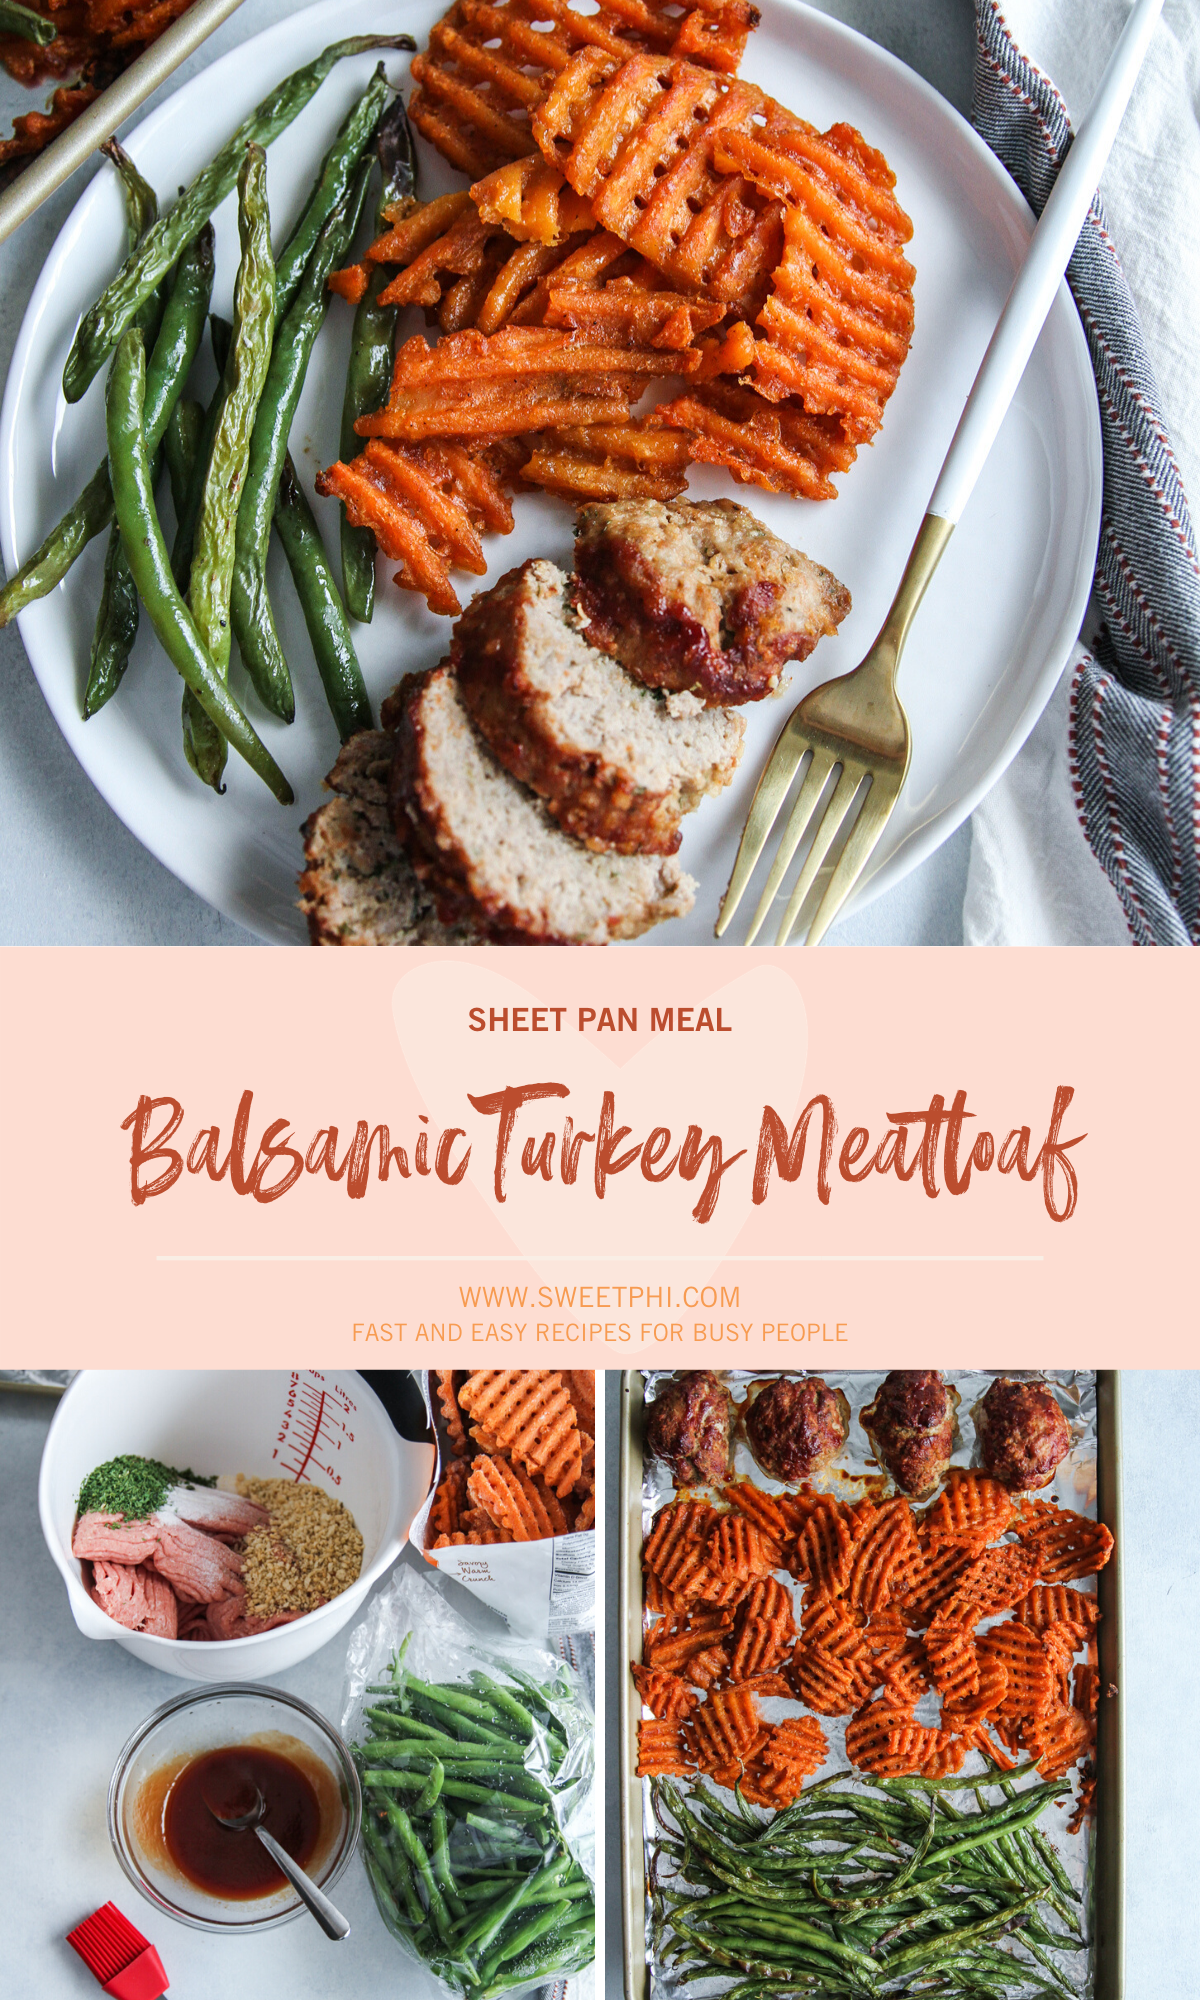 The most amazing ground turkey balsamic meatloaf sheet pan meal